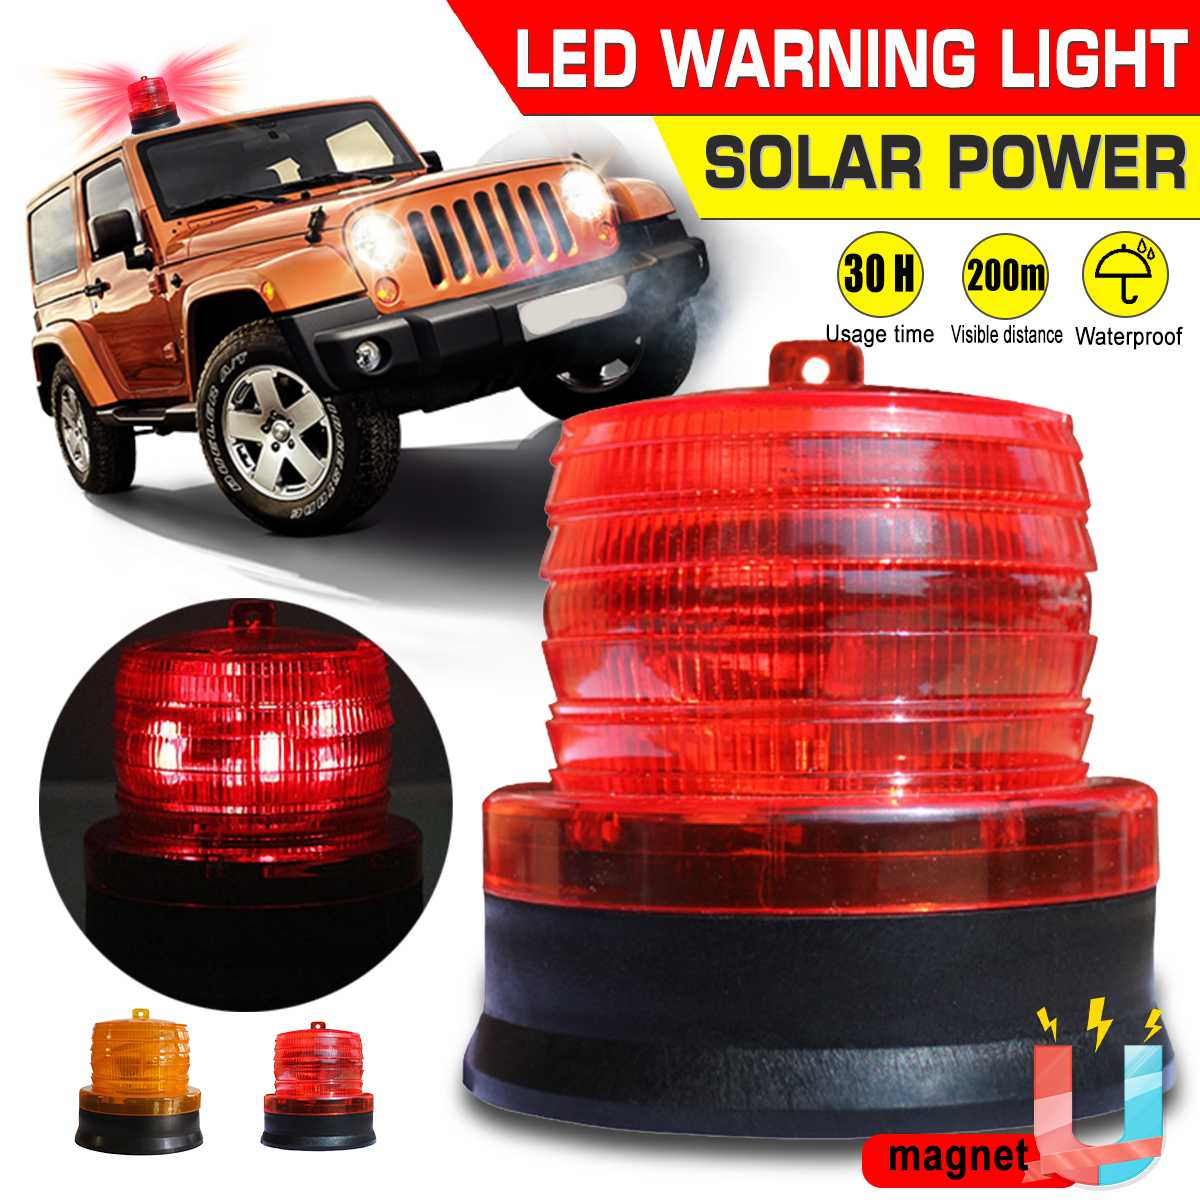 Waterproof Solar LED Car Truck Strobe Warning Light Polices LED Flashing Emergency Light Beacon Lamp Indicator Light With Magnet